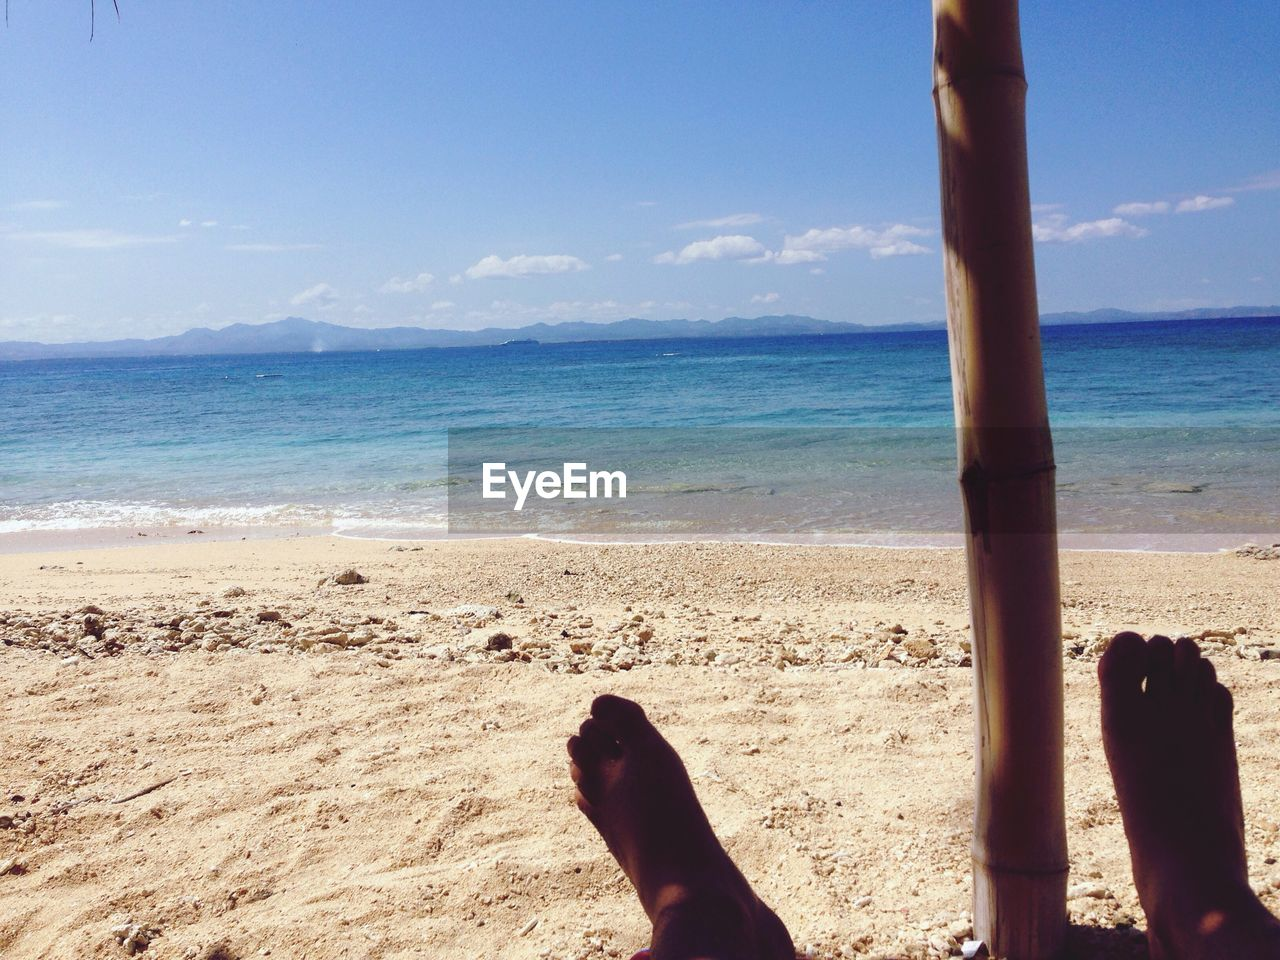 sea, beach, land, water, sky, low section, human leg, human body part, body part, nature, horizon, horizon over water, barefoot, real people, sand, beauty in nature, scenics - nature, one person, relaxation, human foot, outdoors, human limb